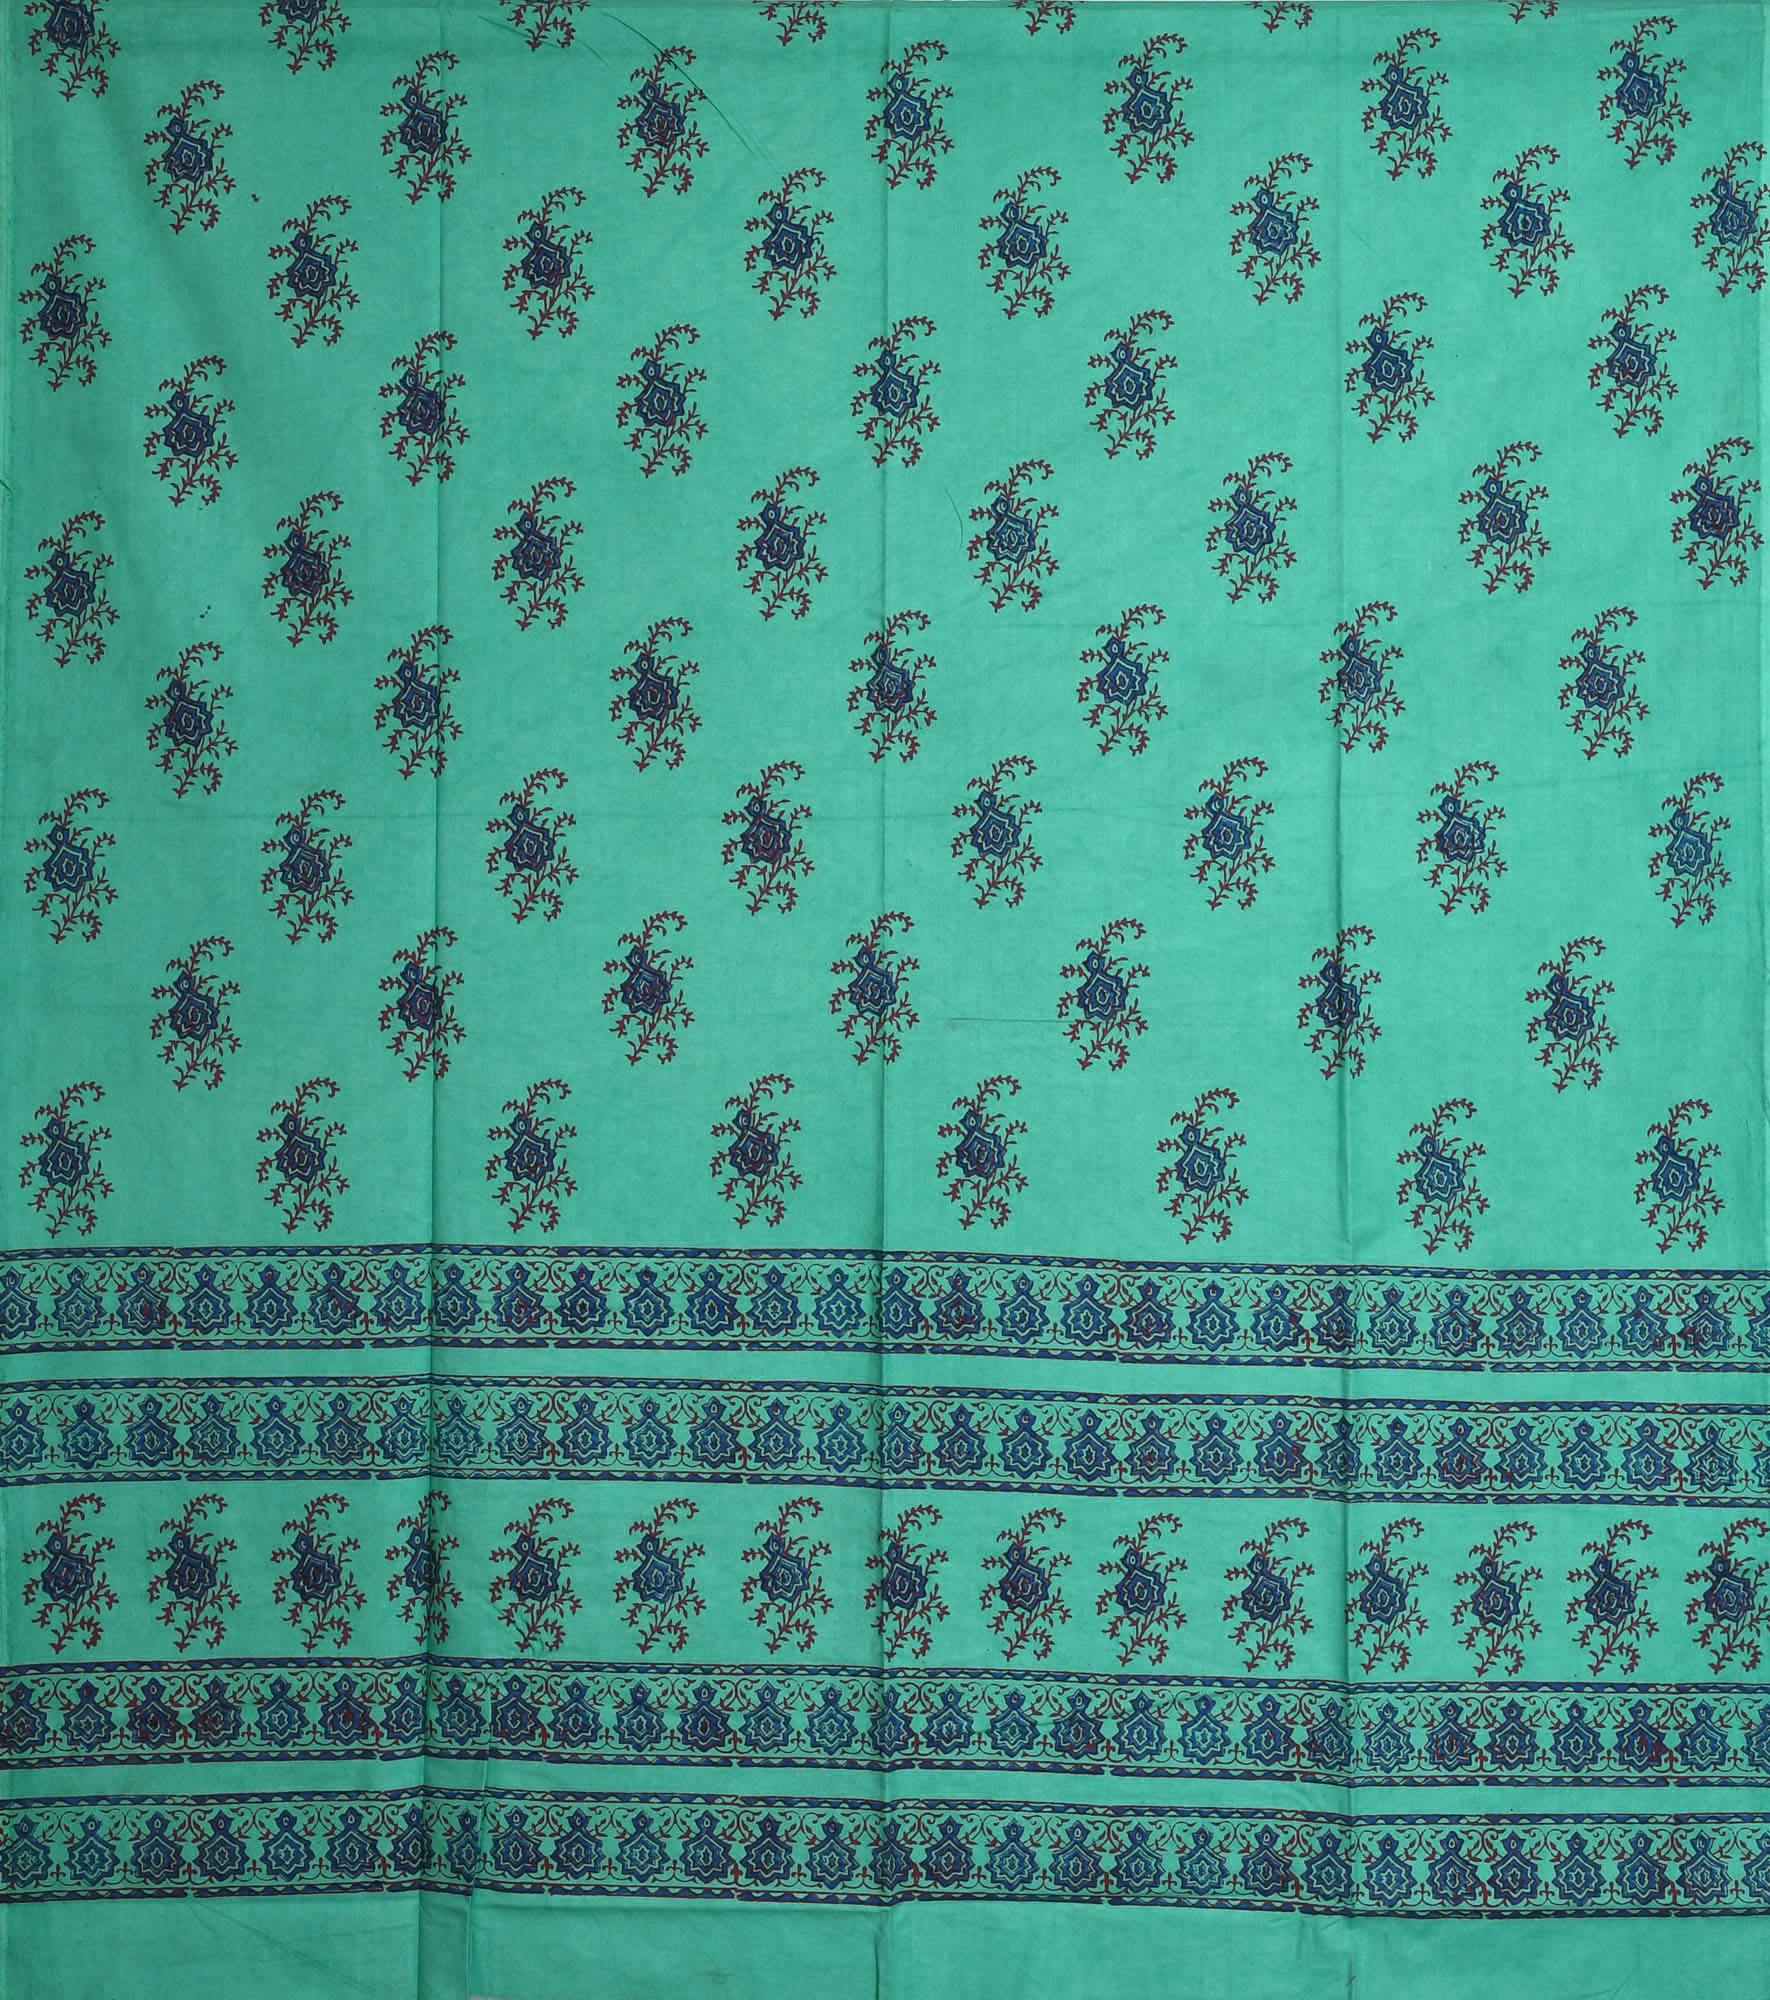 Turquoise Green Curtain With Printed Floral Motifs